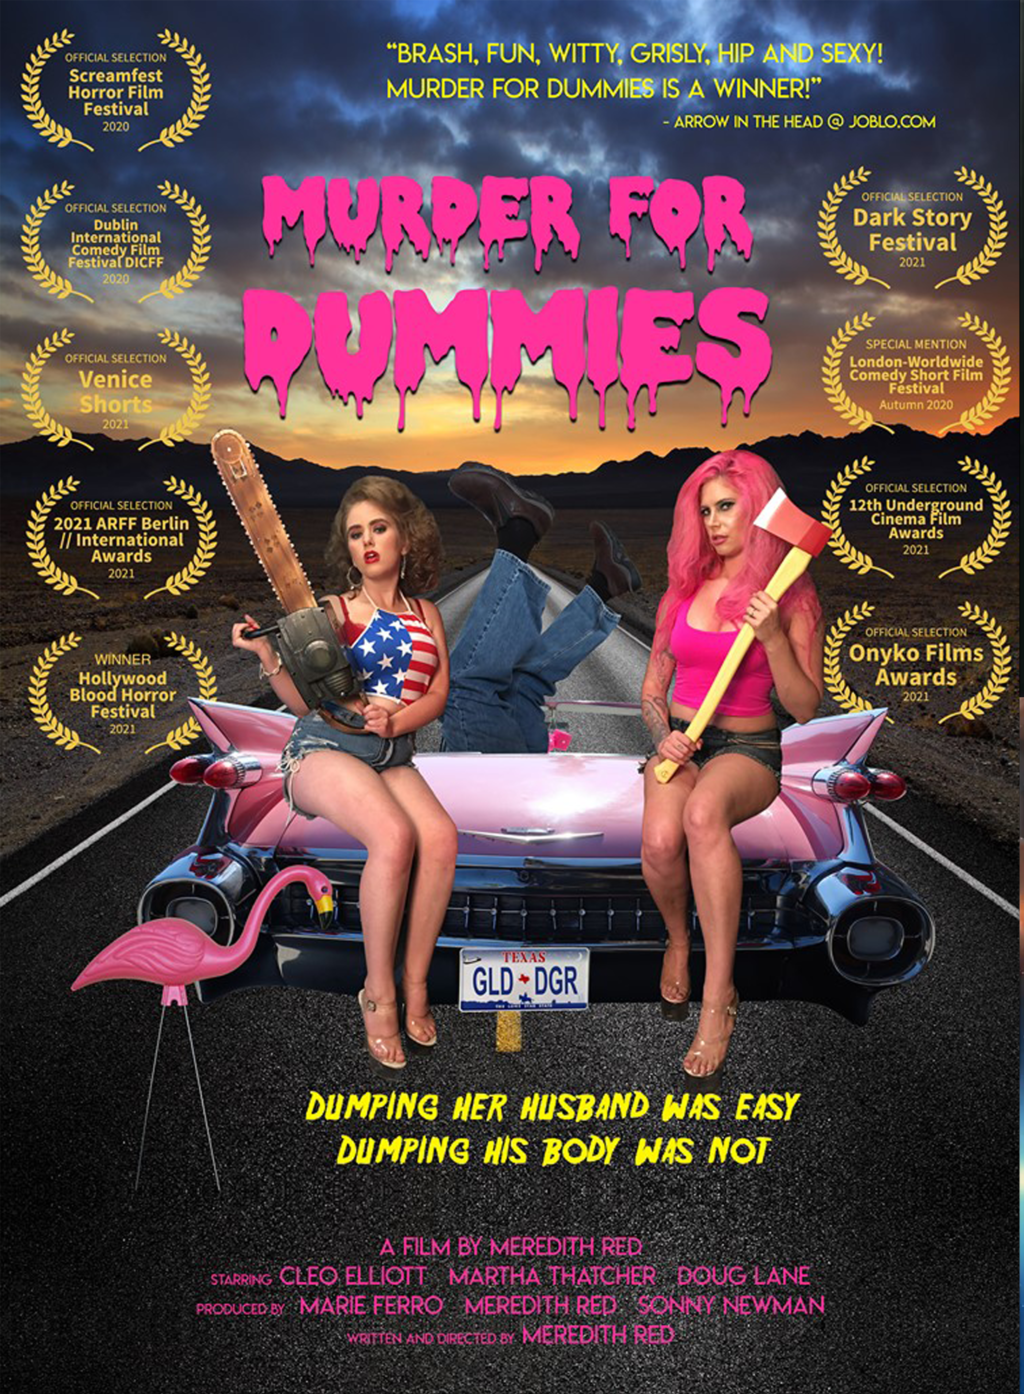 MURDER FOR DUMMIES poster 1024x1394 - MURDER FOR DUMMIES: Bonus Short Added to Free FAKING A MURDERER Los Angeles Premiere on August 3rd